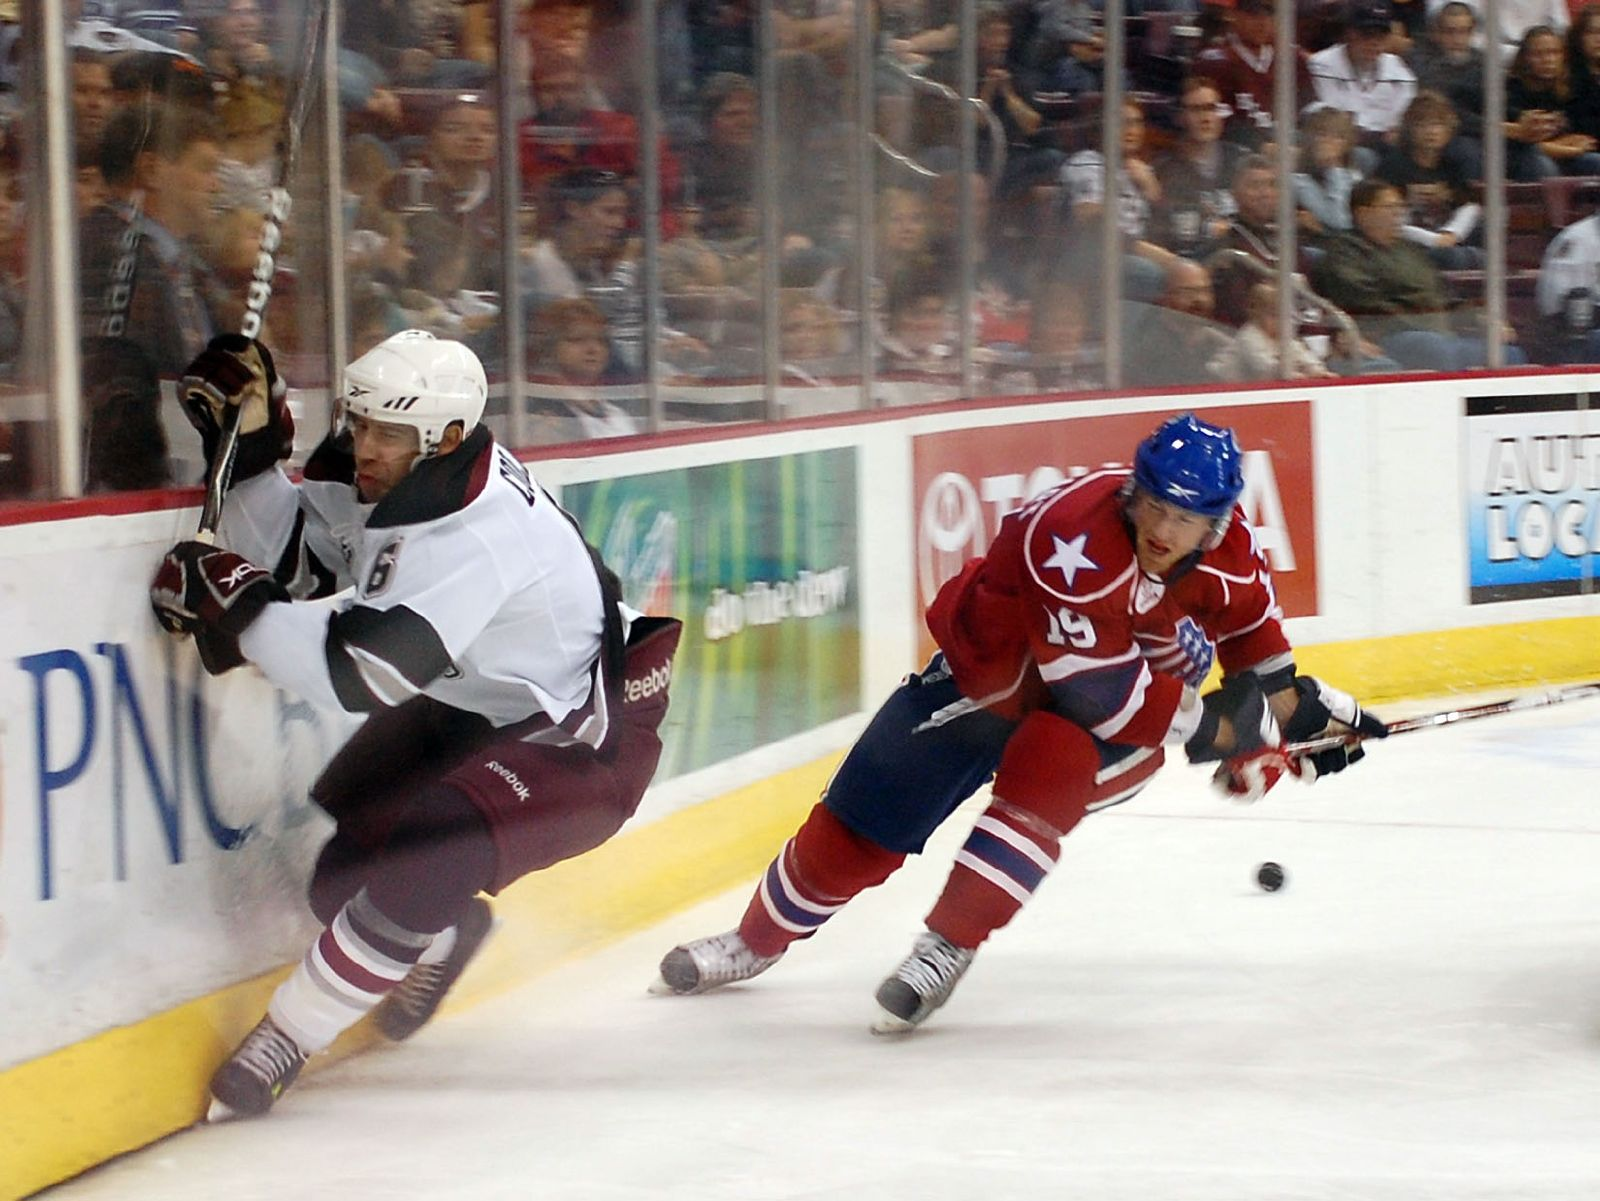 AHL: Hockey Deal Could Reverse Tucson's Dismal Minor-league Fortunes